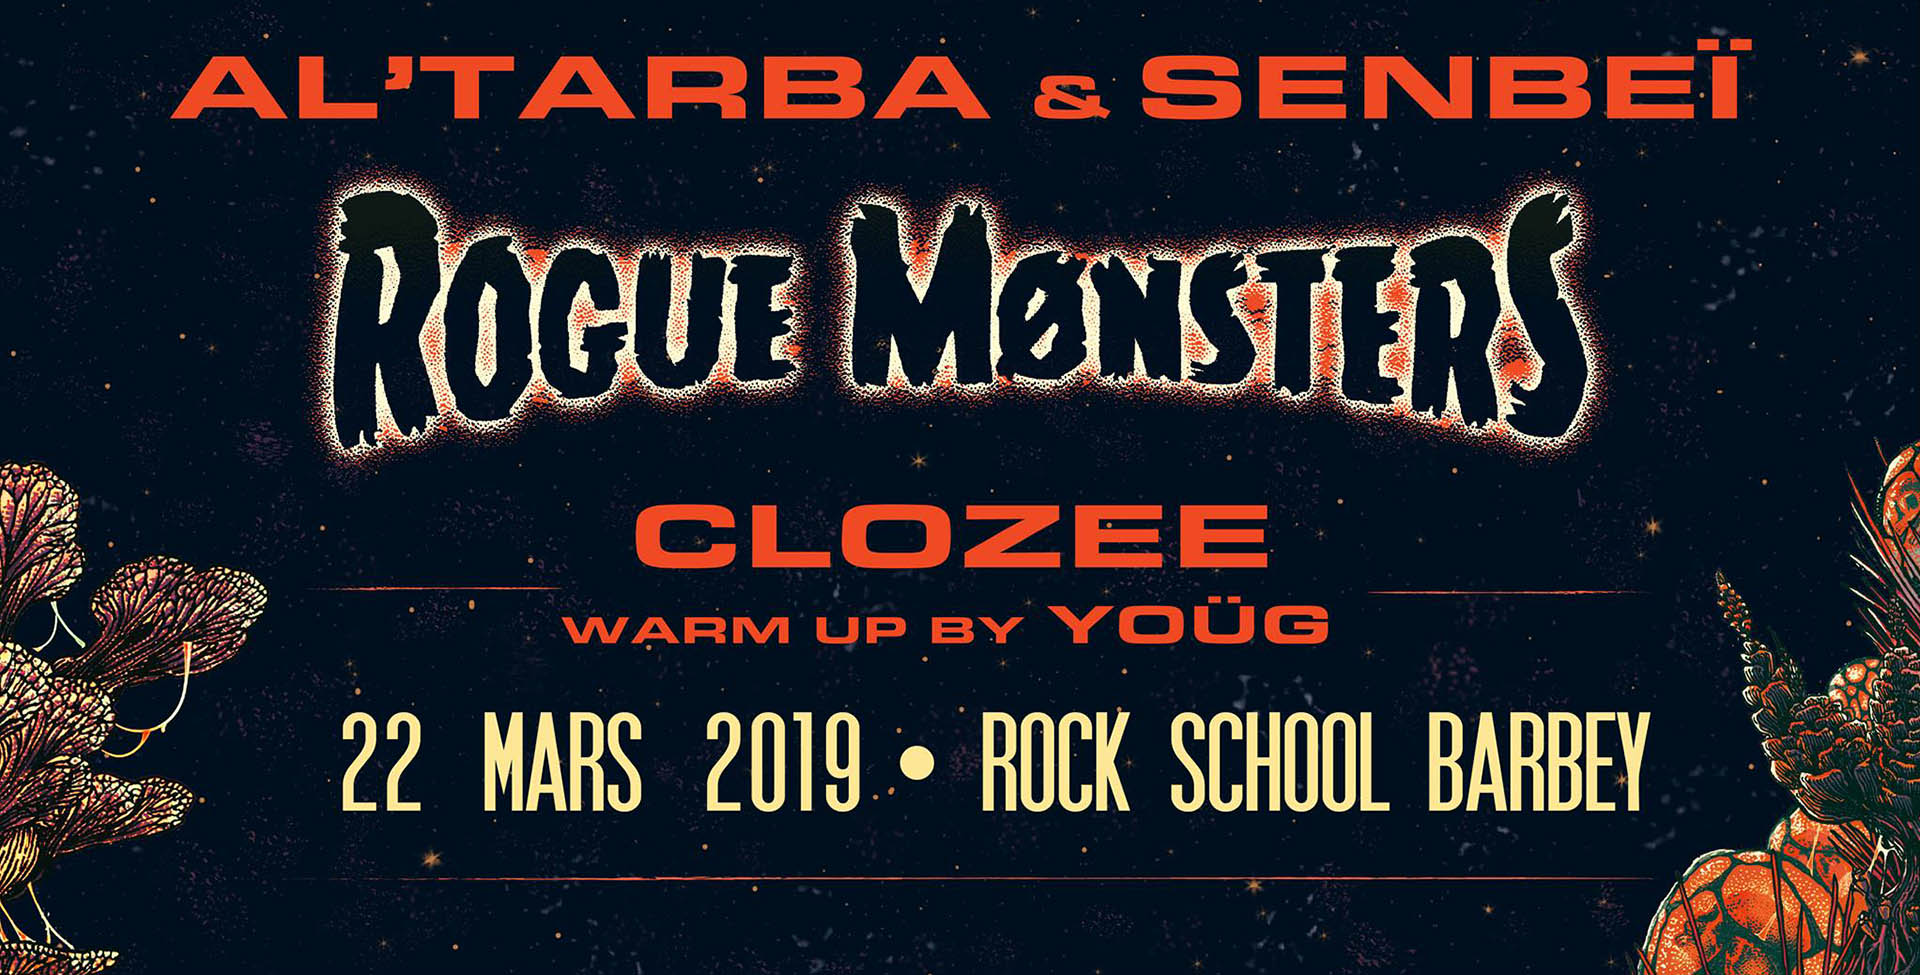 Al-Tarba-Senbei-Rogue-Monsters-Bordeaux